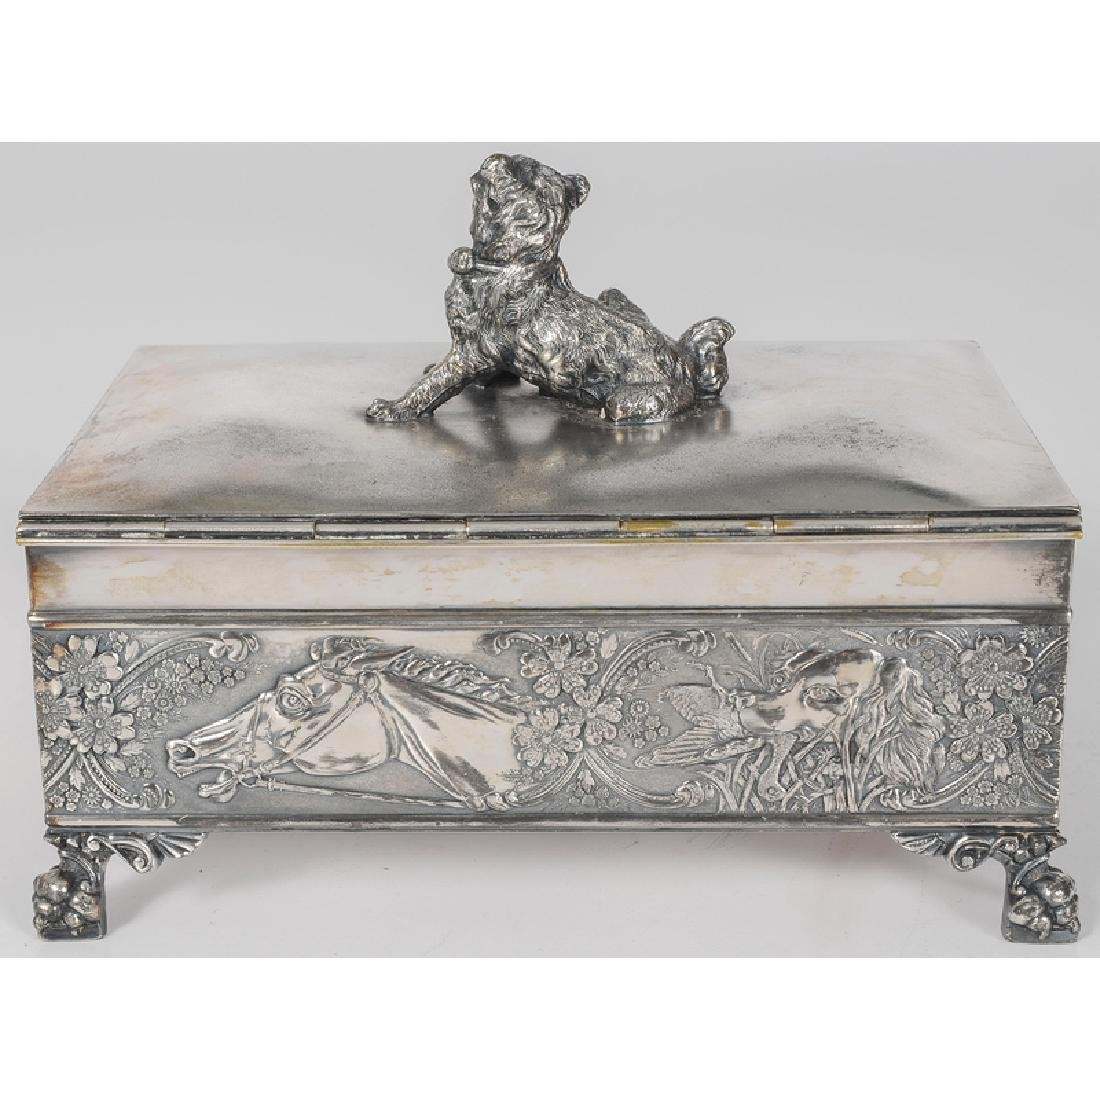 Tufts Silverplated Dresser Box with Dog Motifs - 3